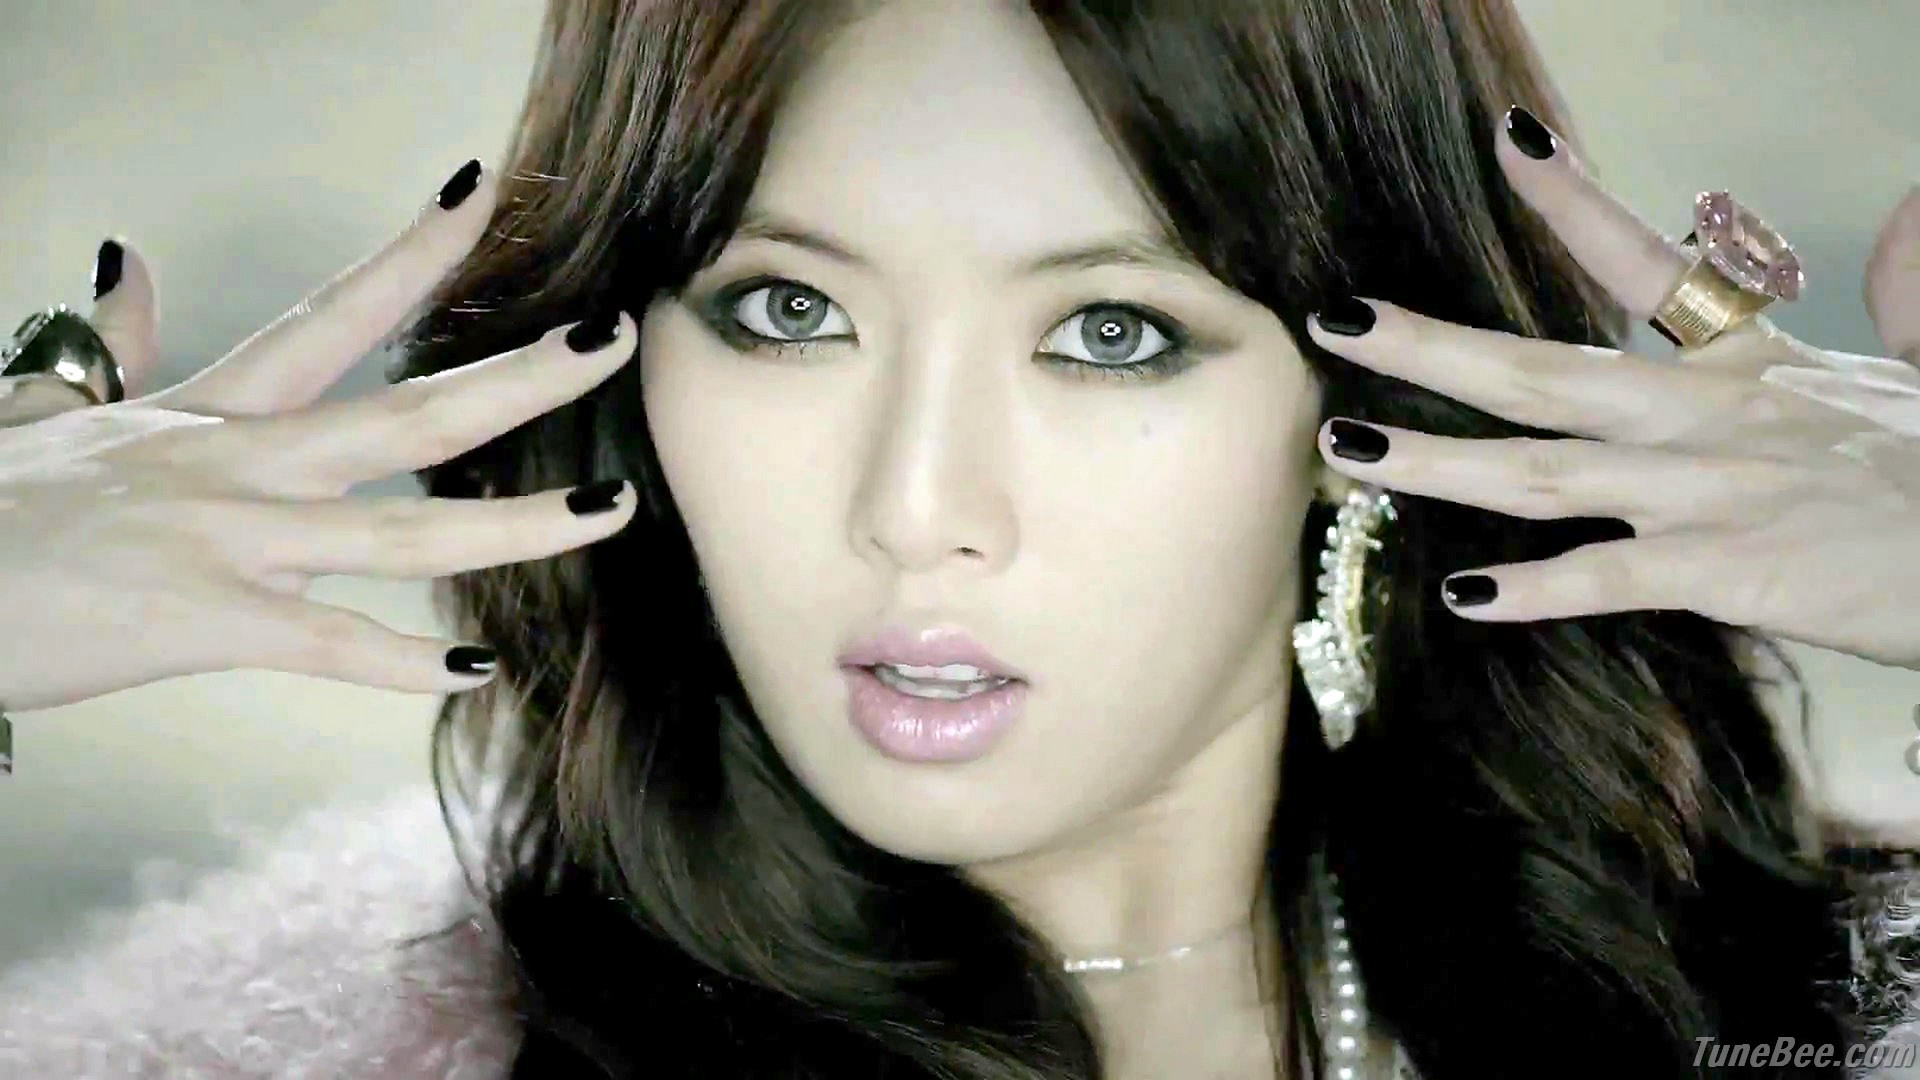 Troublemaker images hyuna en el video trouble maker HD ...